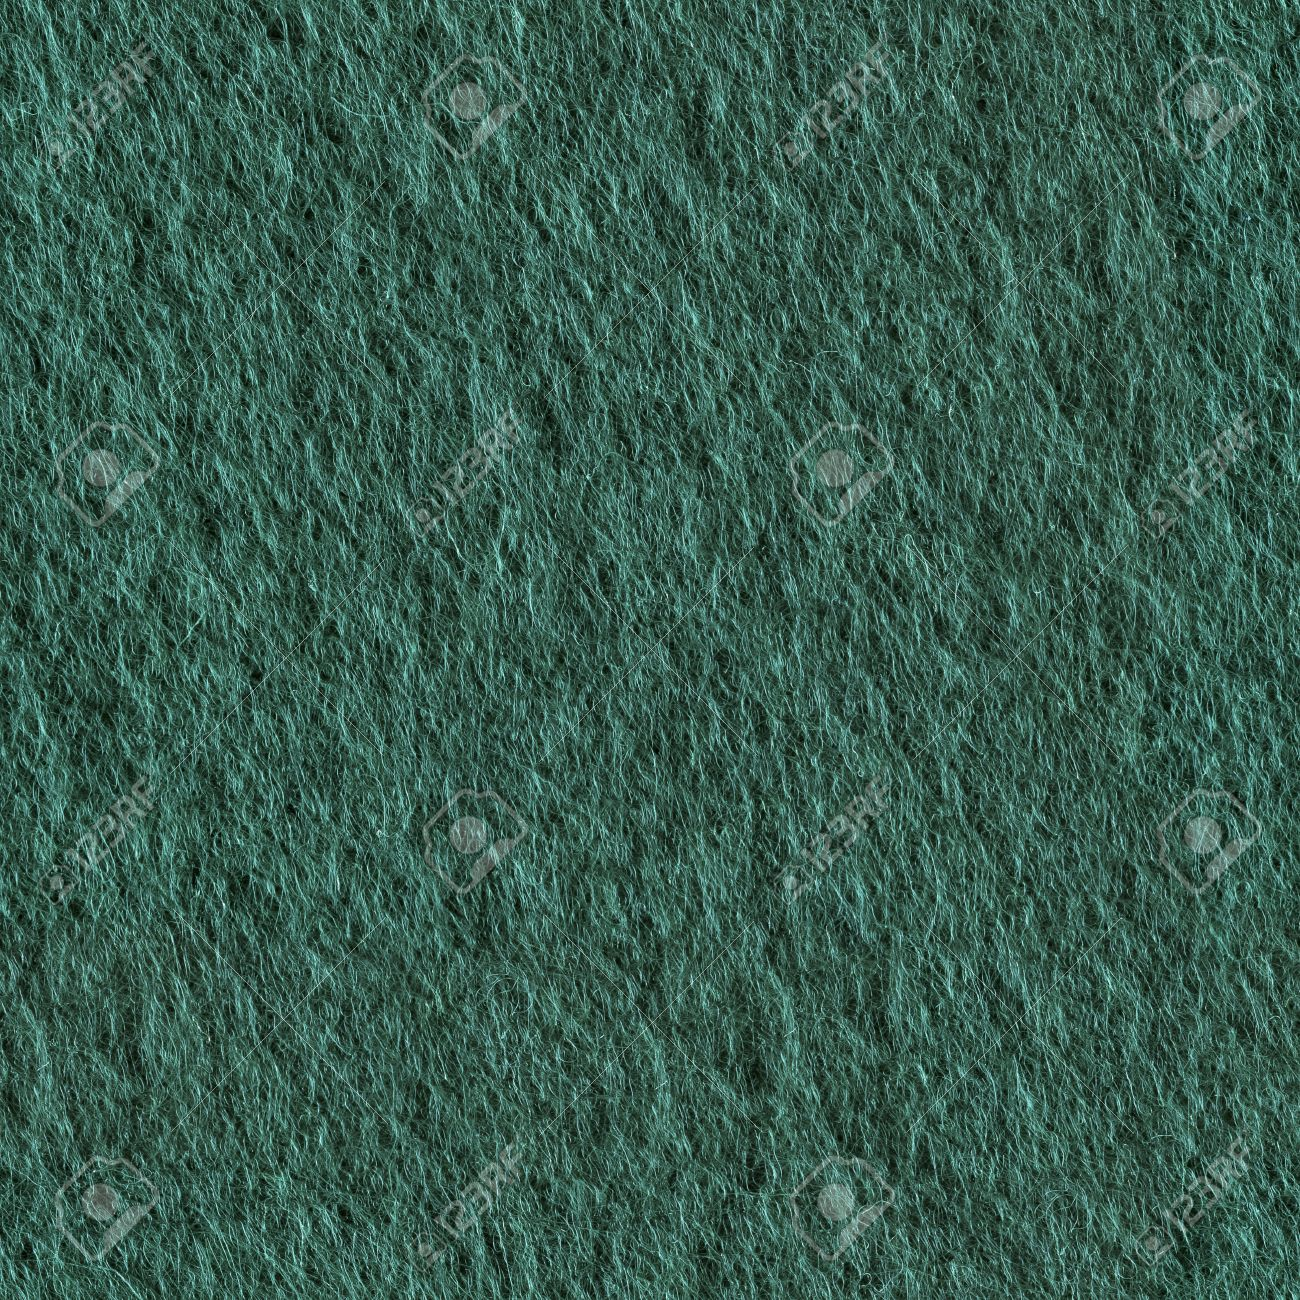 Poker table background - Poker Table Felt Background In Green Color Seamless Square Texture Tile Ready Stock